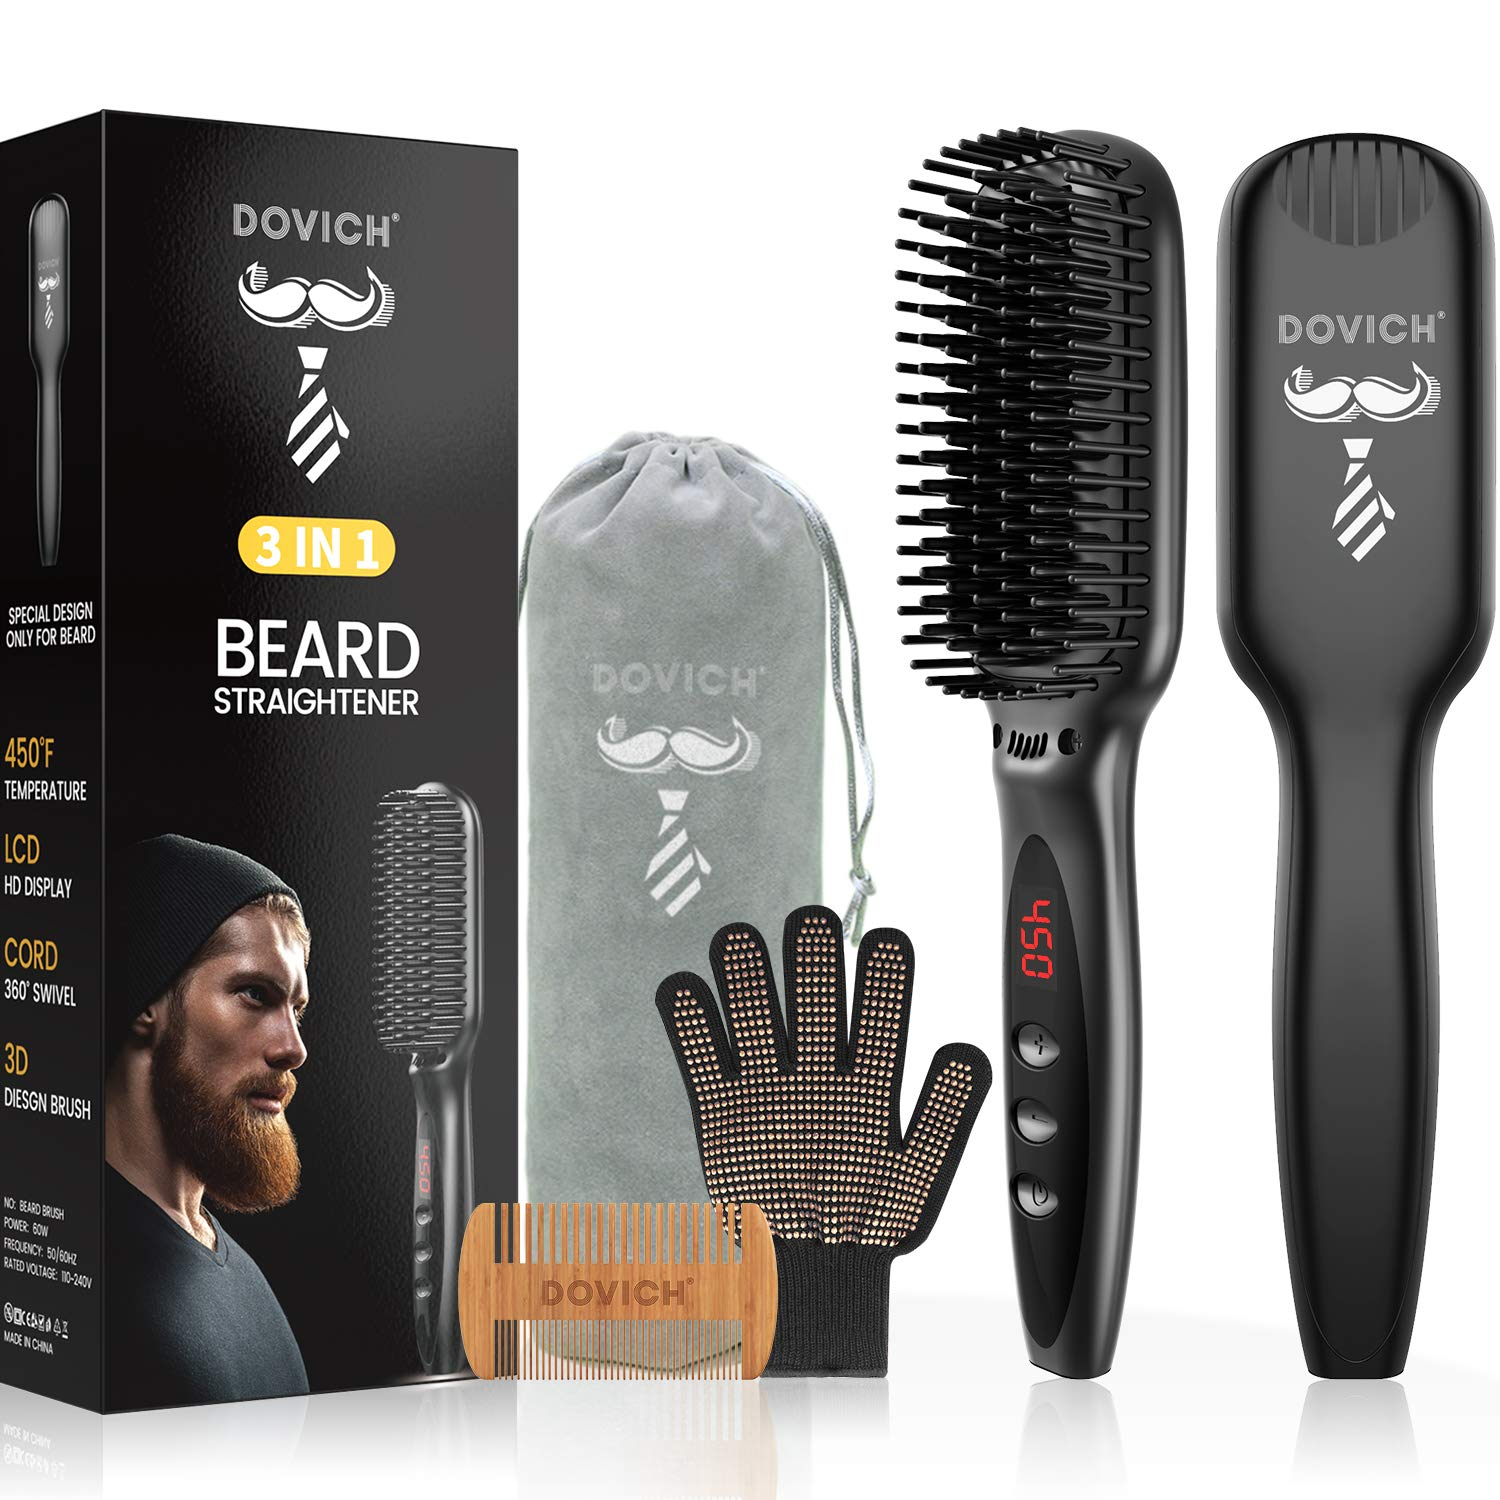 3 In 1 Beard Straightener For Men, Dovich Ceramic Heating With Anti-Scald Straightening Comb, Adjustable Temperatures With Led Display Ioinc Straightening Brush, Portable Detangling & Styling.